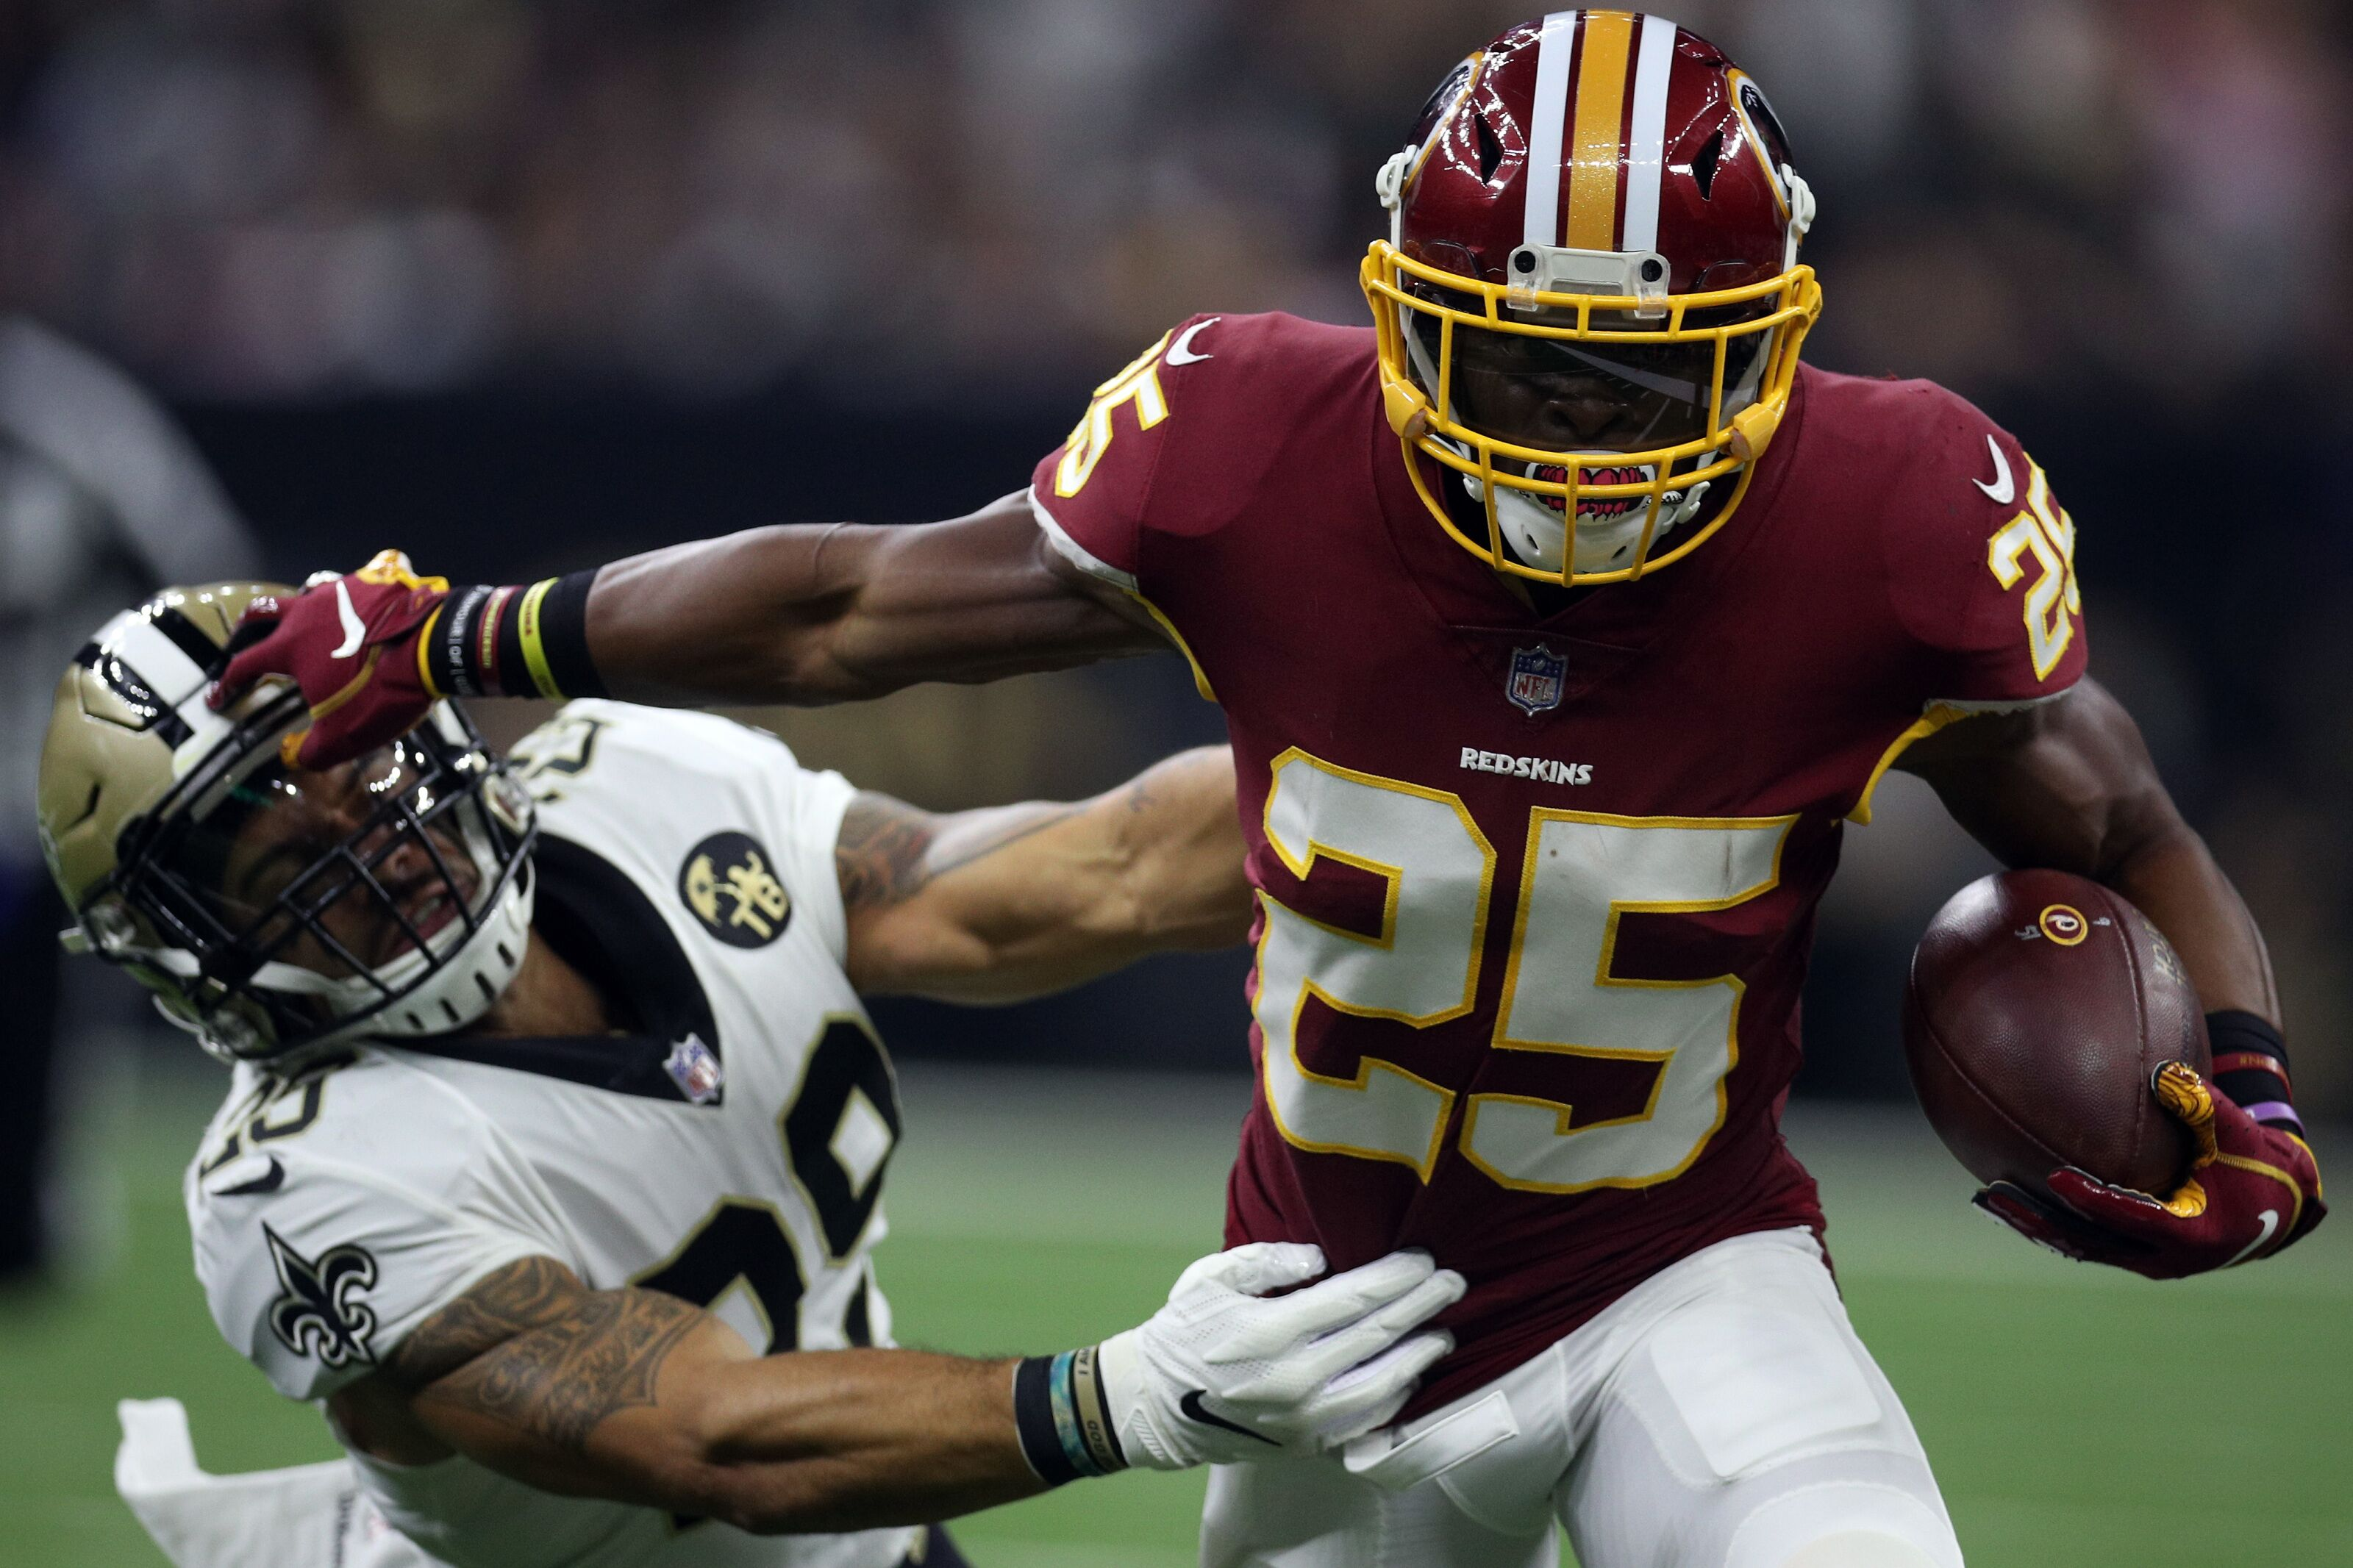 Redskins RB Chris Thompson eager for game action against Bengals